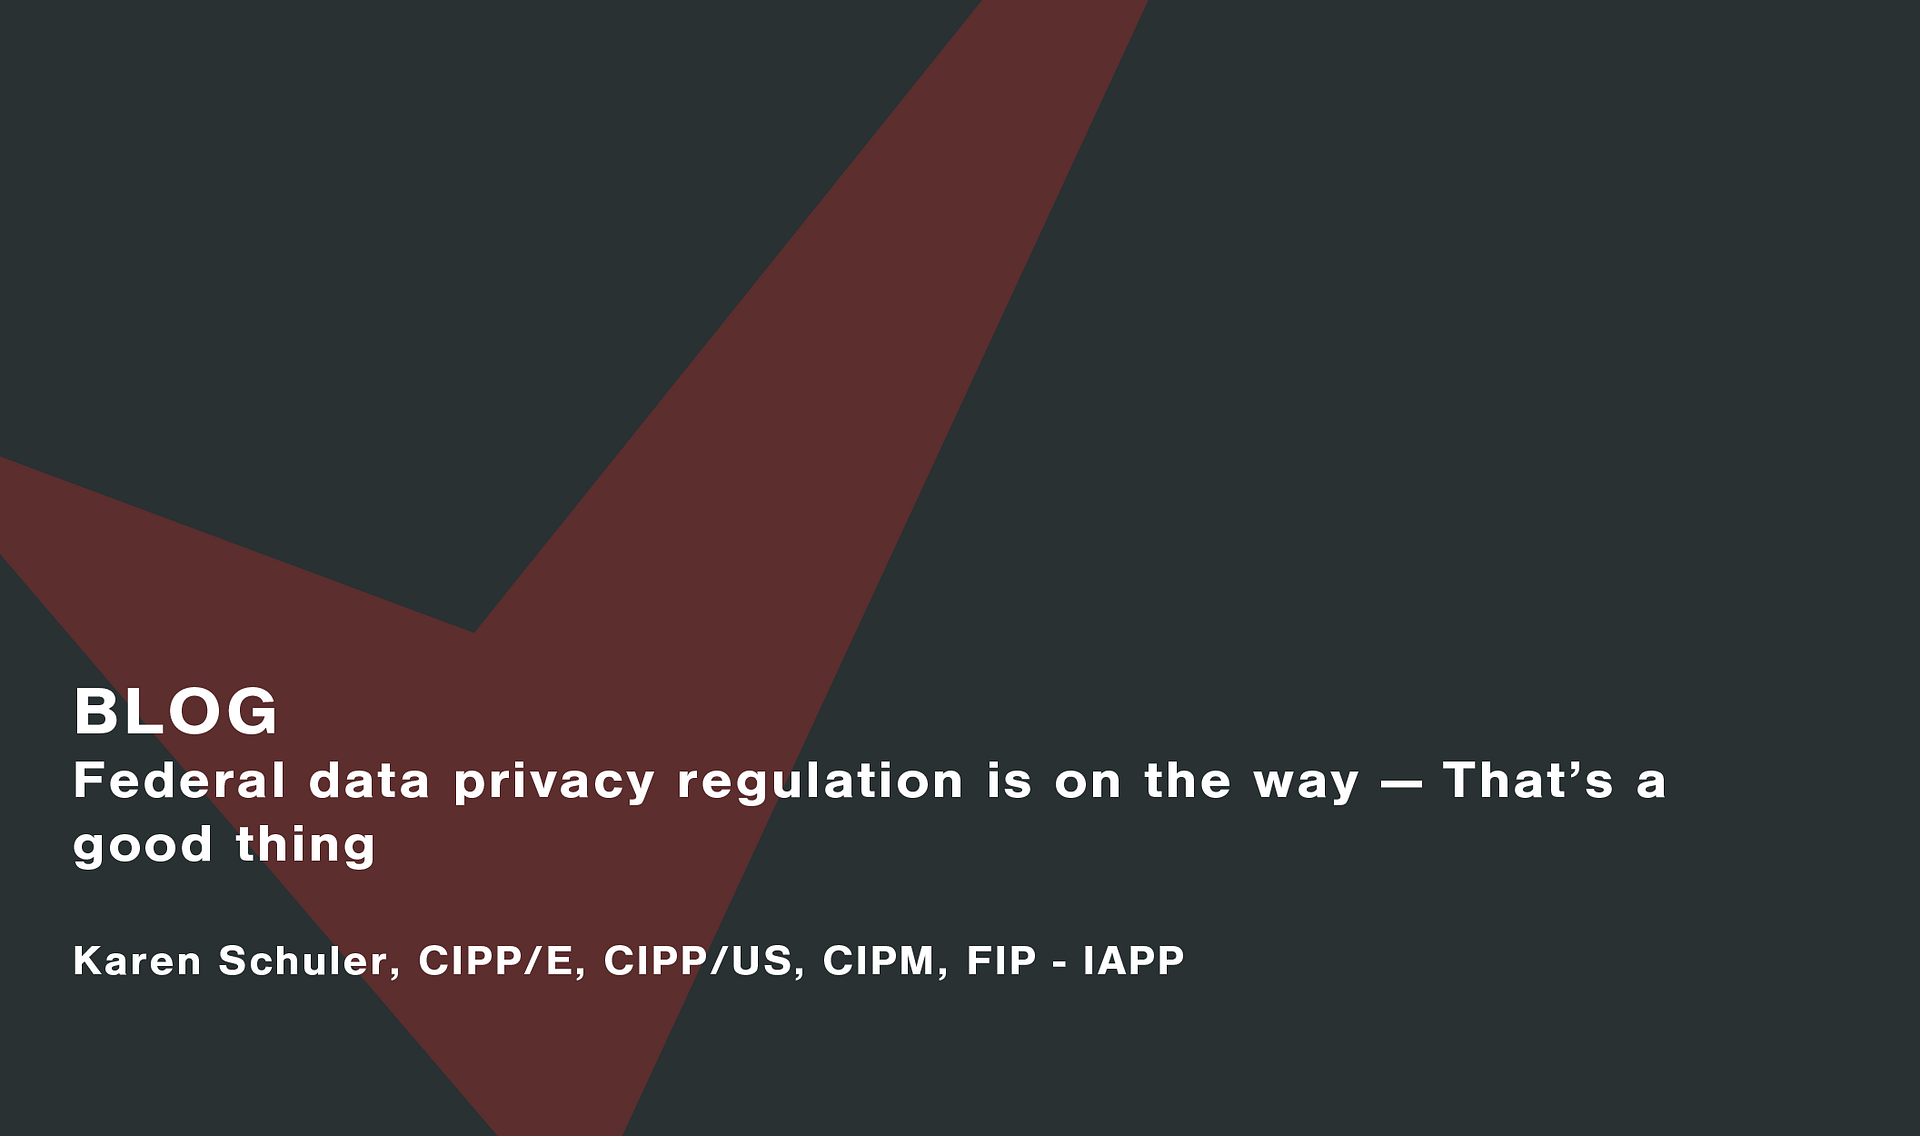 Federal data privacy regulation is on the way Cassie personal information & consent management